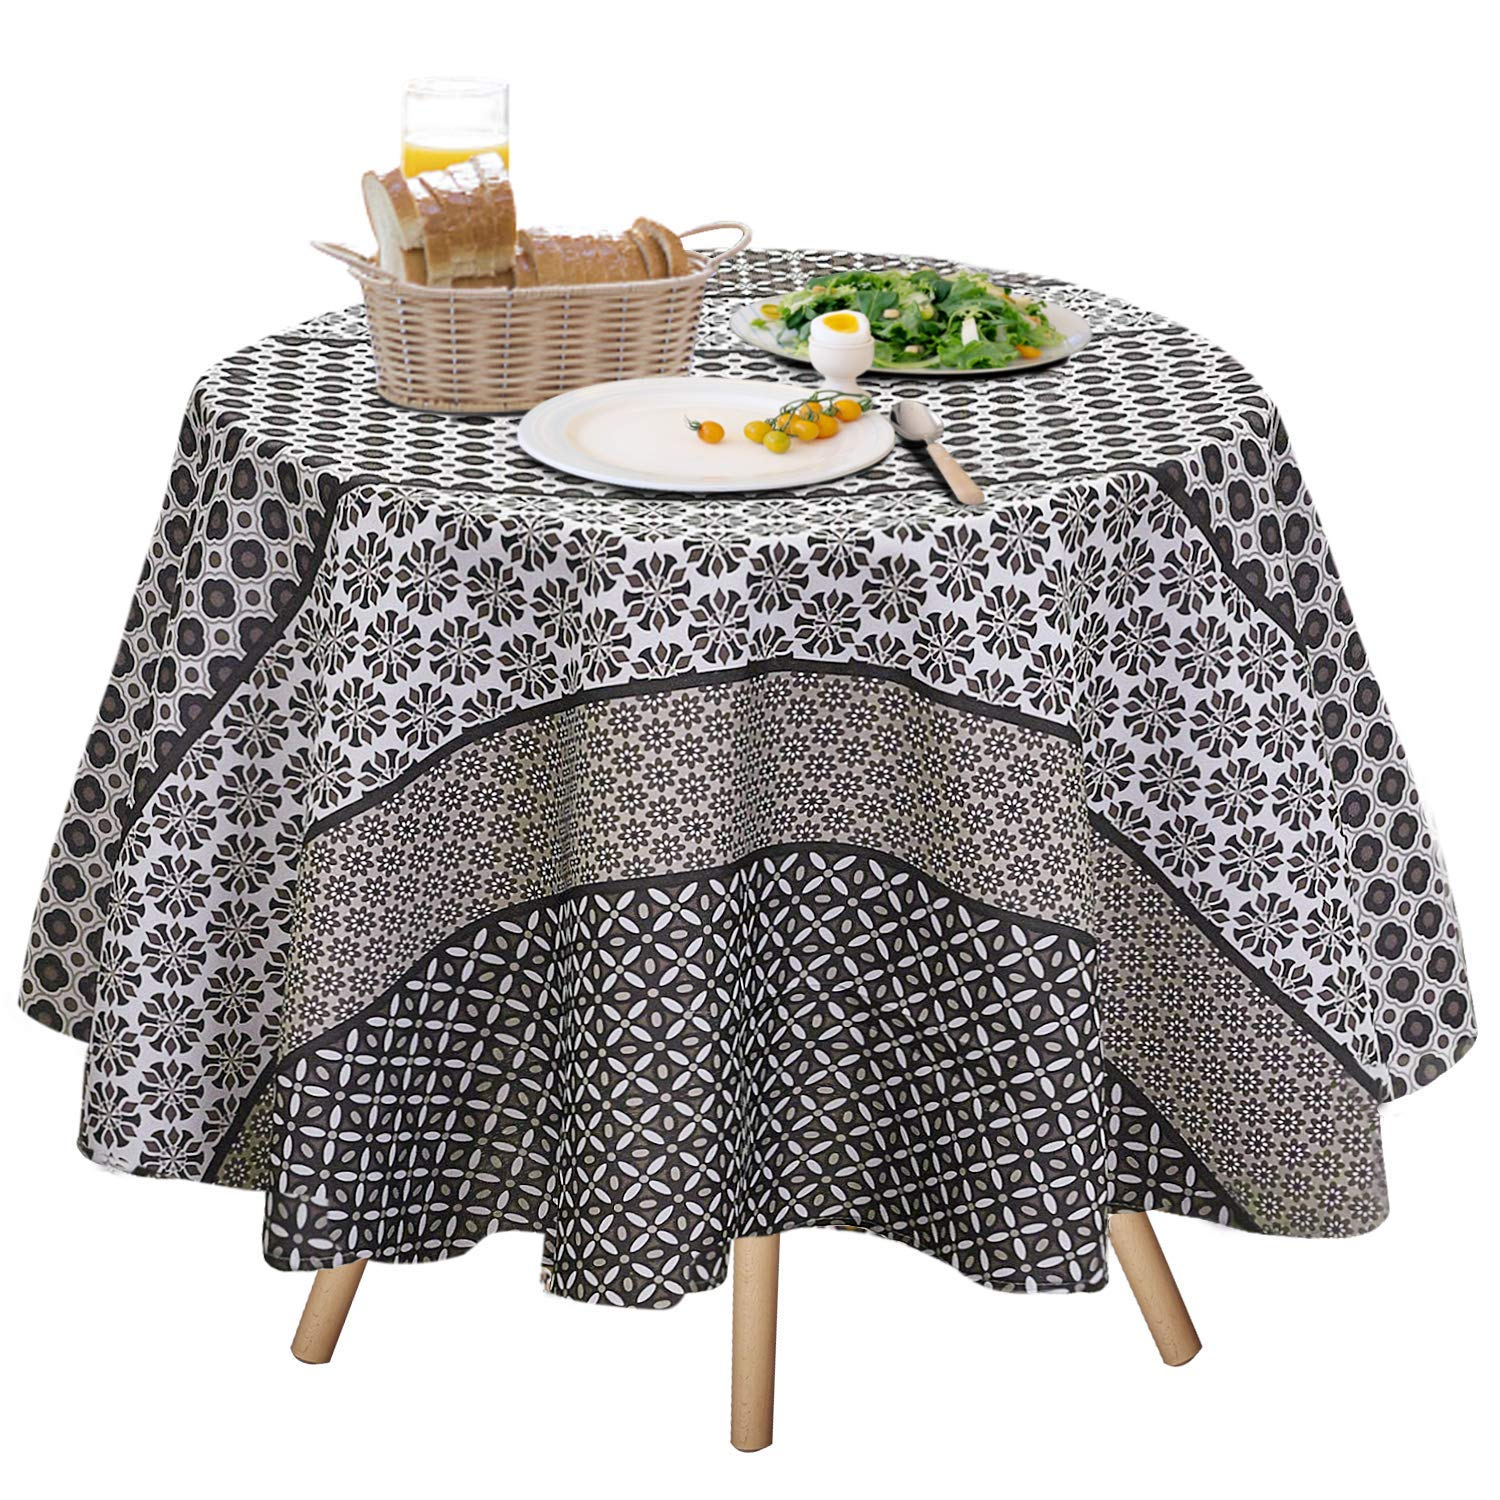 Jiater Fl Printed Table Cloth Spillproof Polyester Fabric Round Tablecloths 70 Coffee